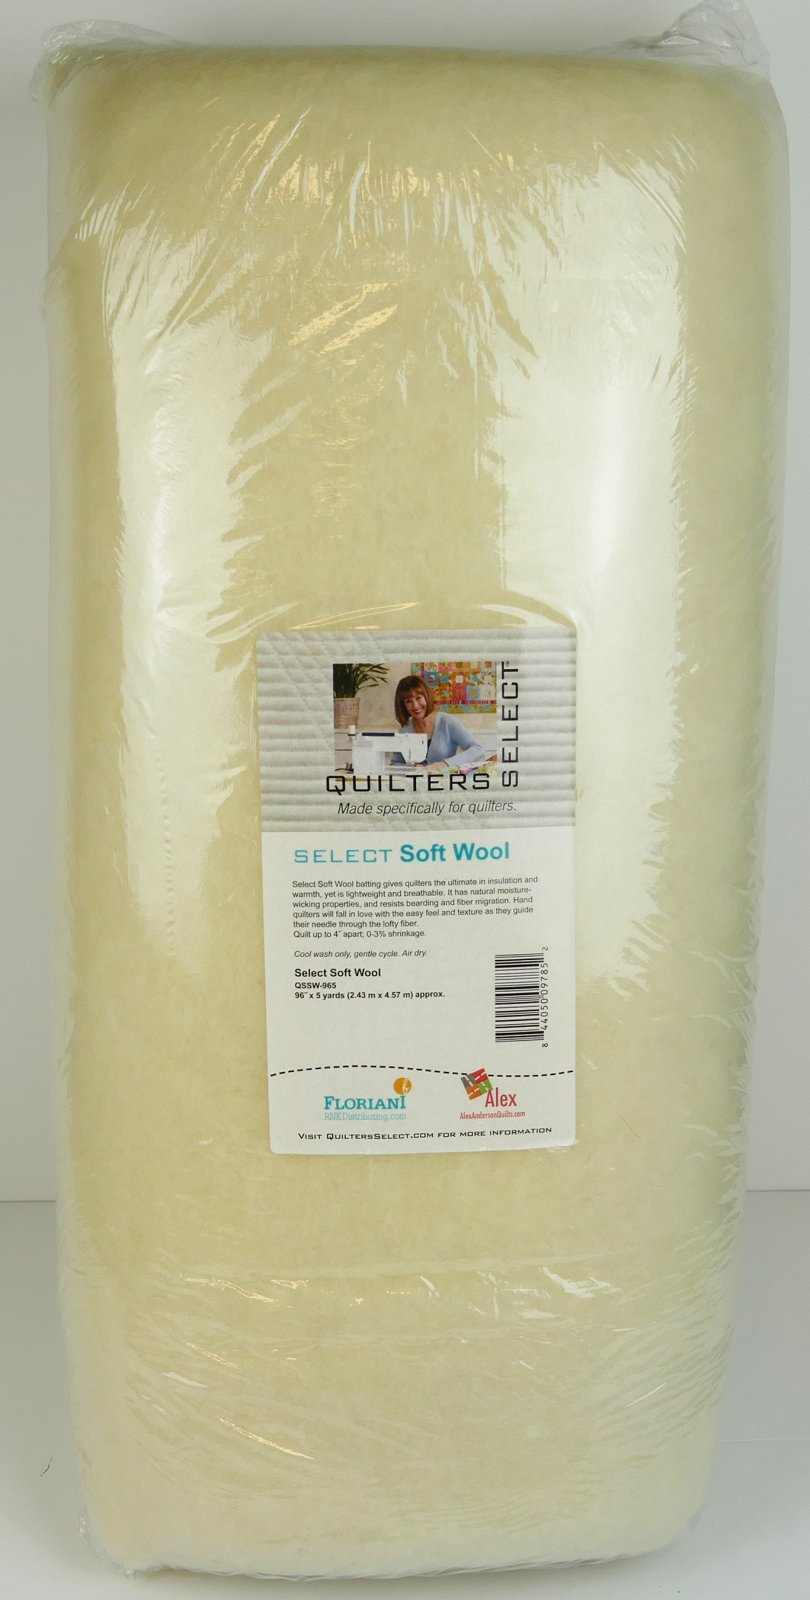 Select Soft Wool 96 x 5 yds *Limited Edition Size*